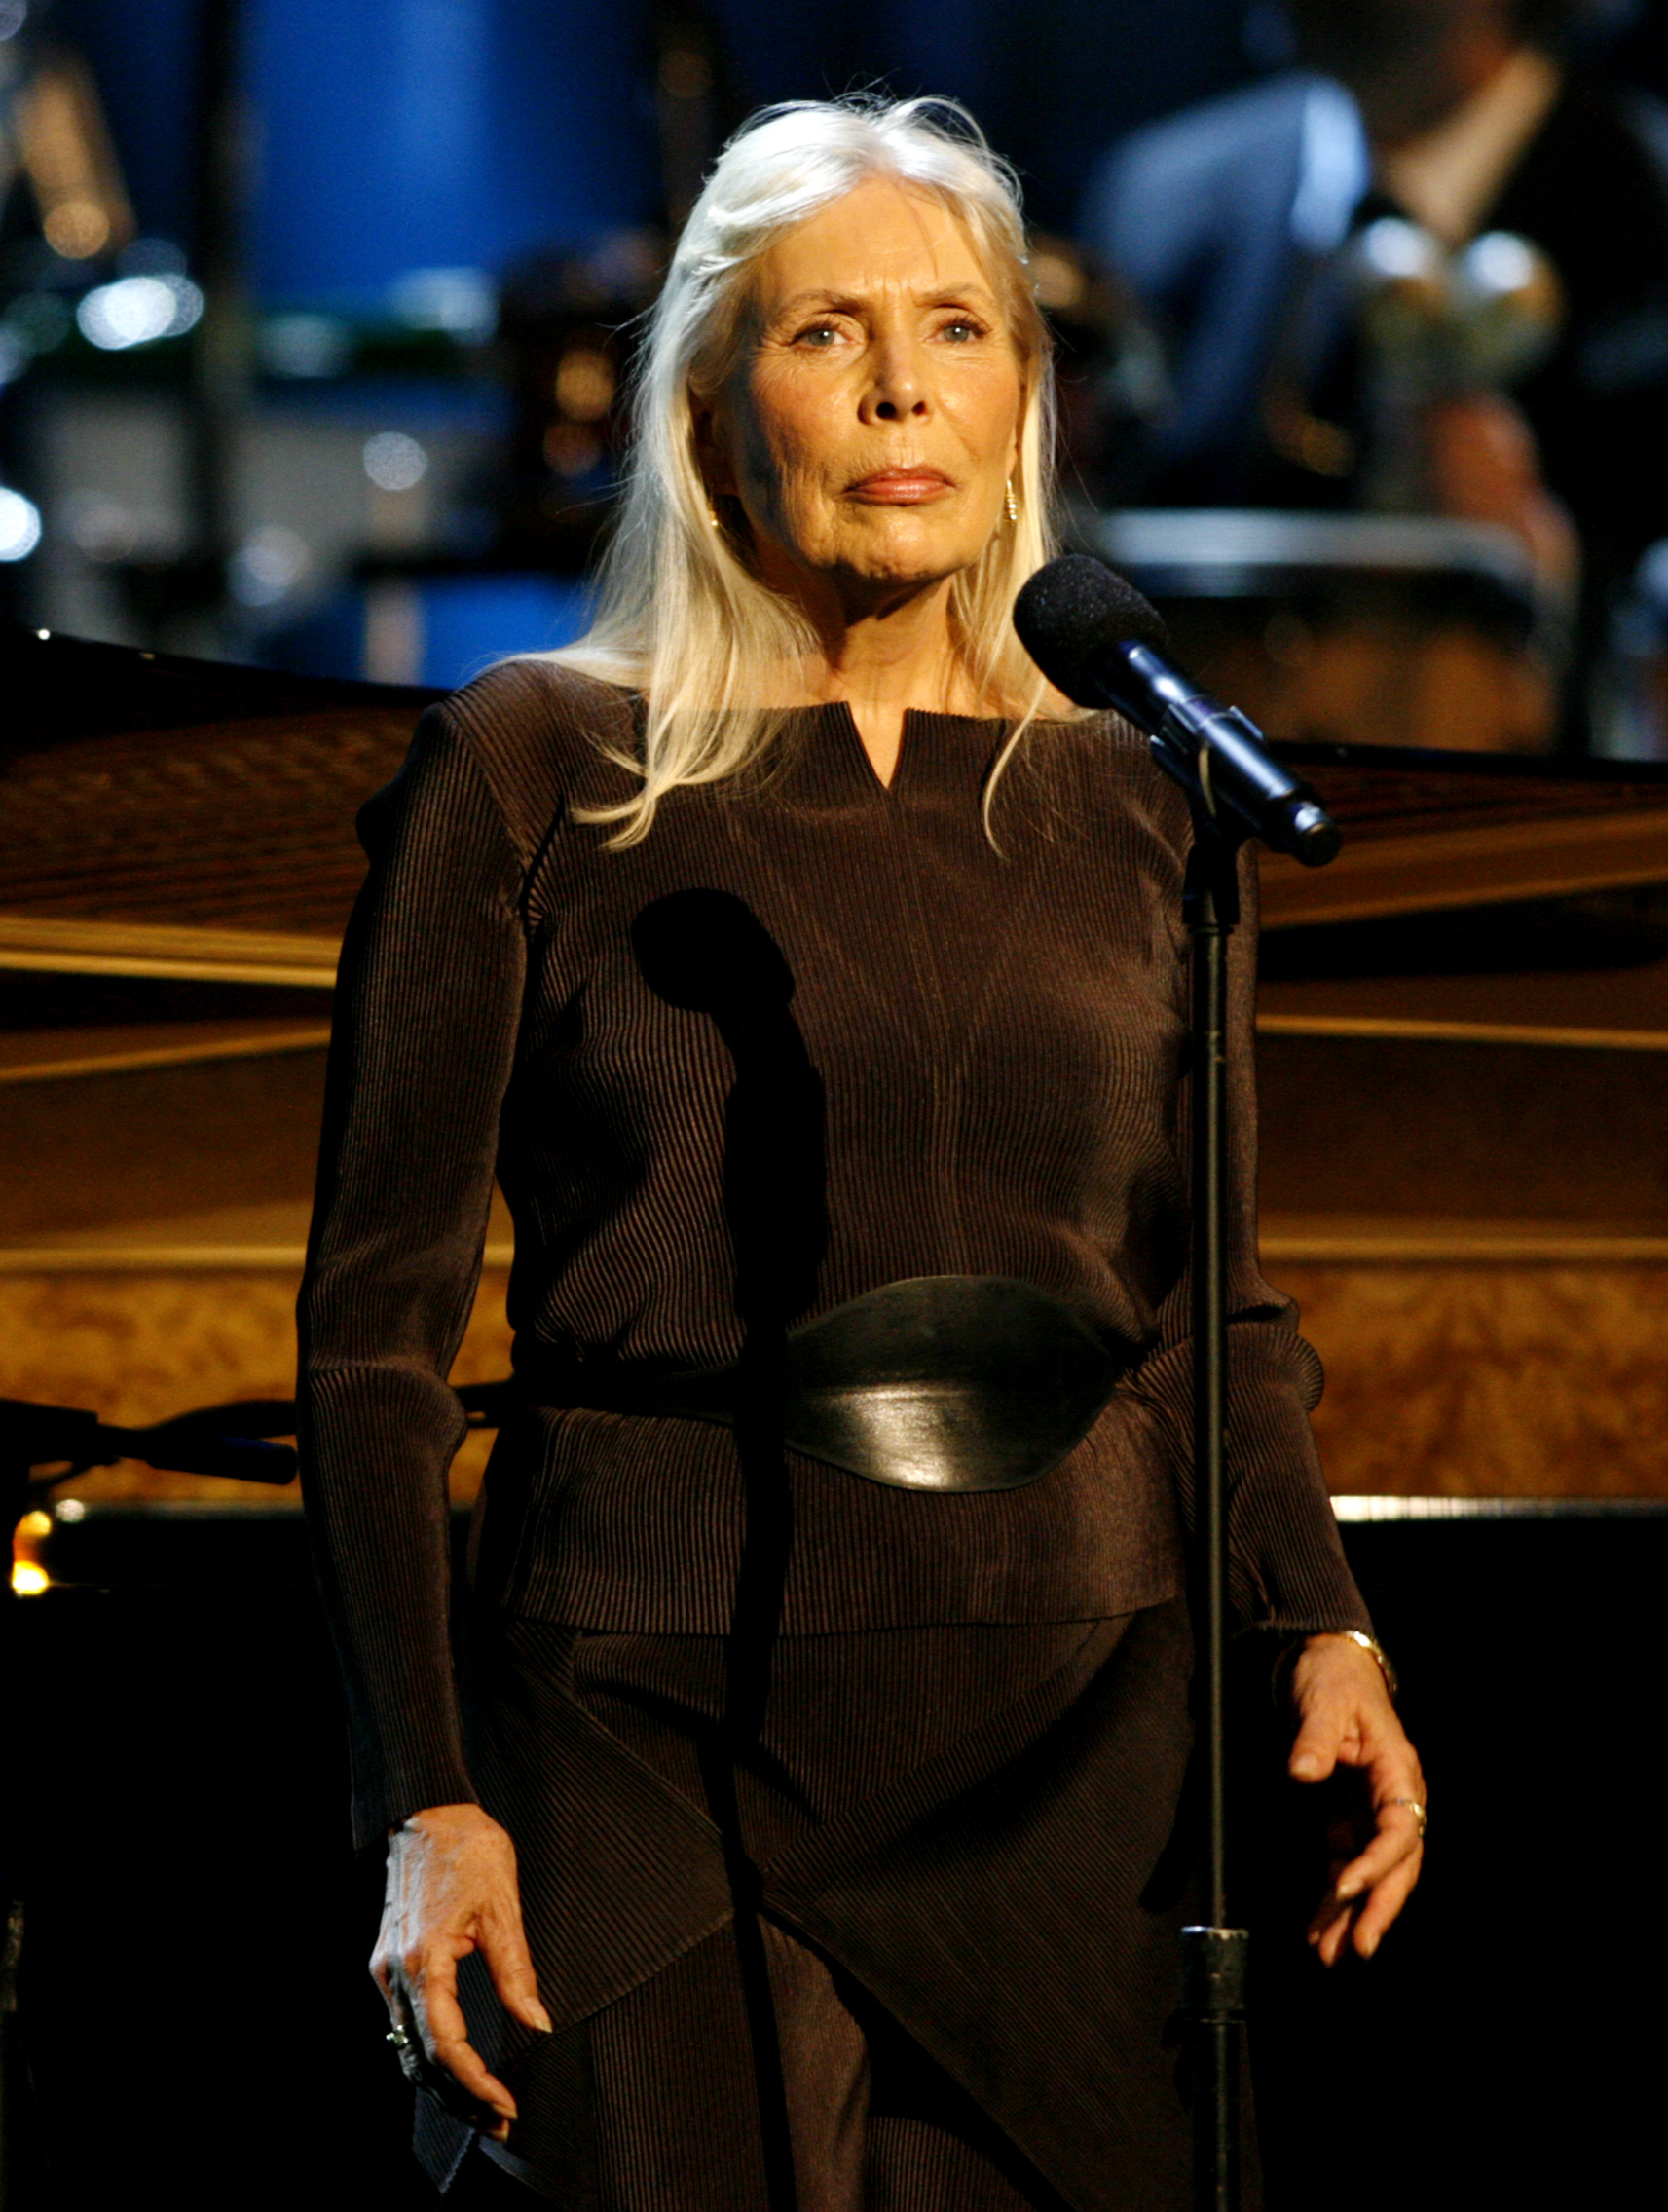 Musician Joni Mitchell performs at the Thelonious Monk Institute of Jazz International Trumpet Competition and Herbie Hancock Tribute in Hollywood October 28, 2007. REUTERS/Max Morse (UNITED STATES)